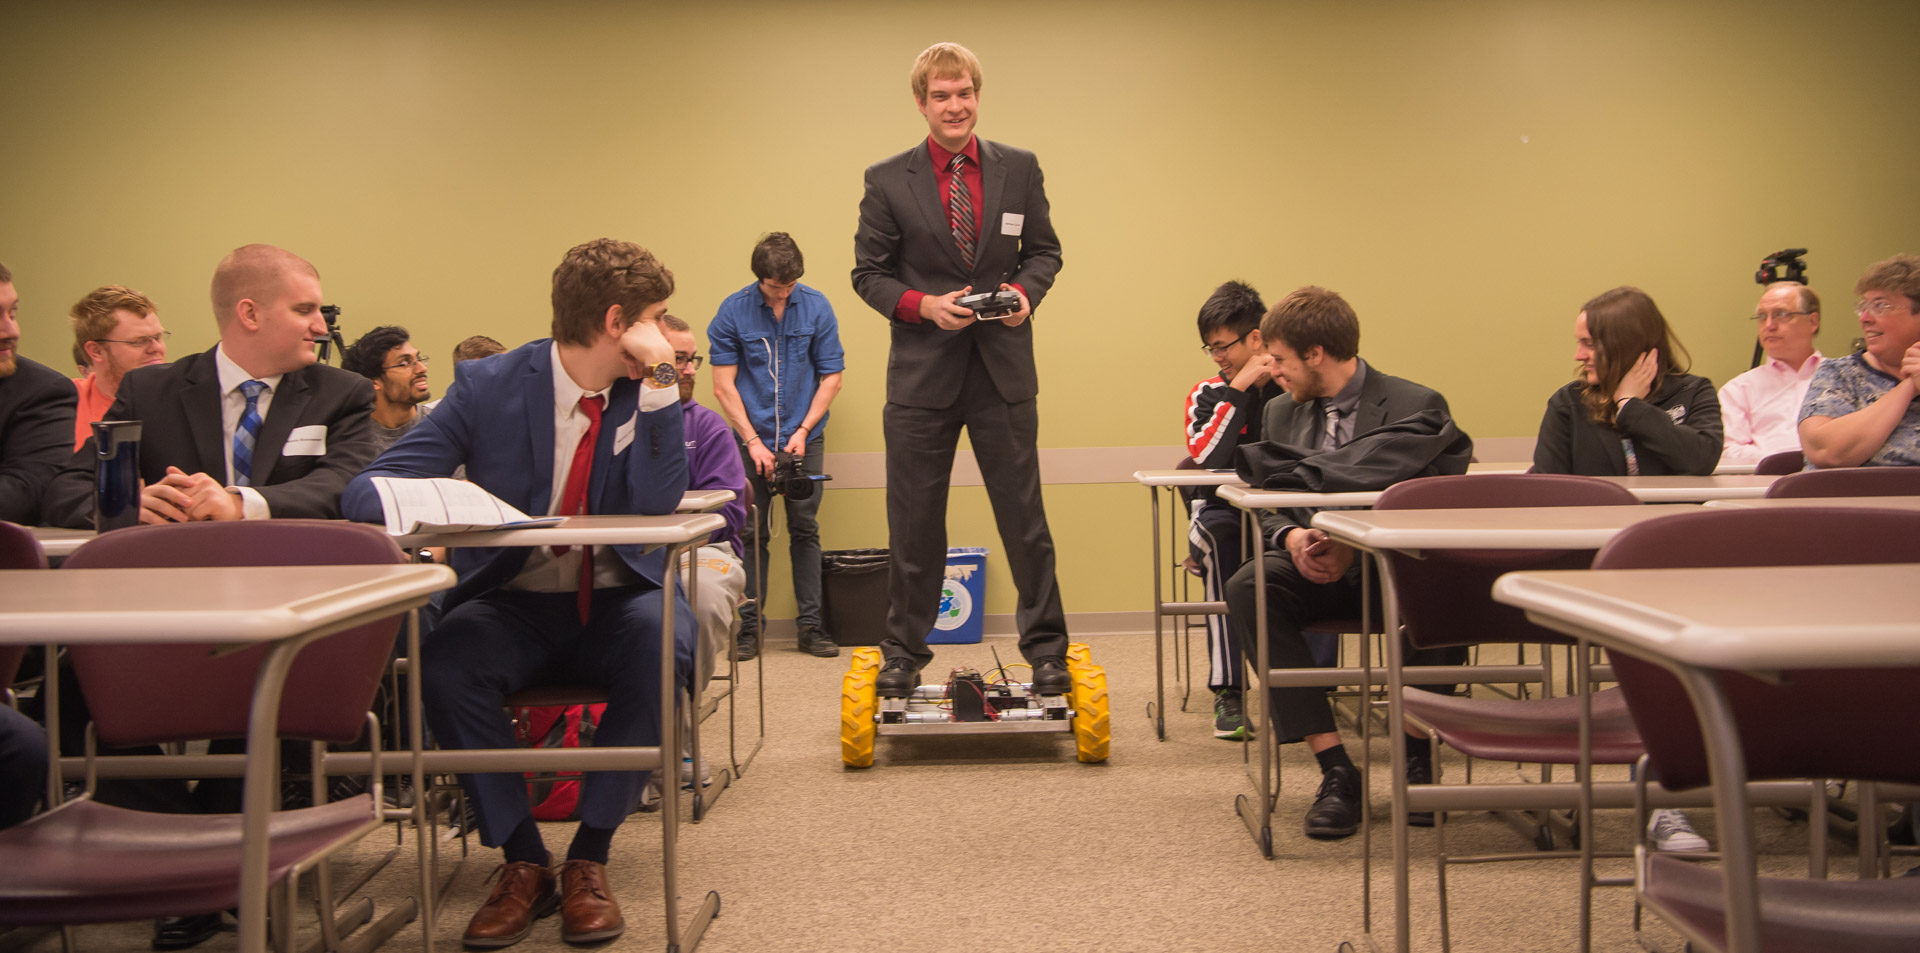 A class looking at a student standing atop a small four-wheeled platform